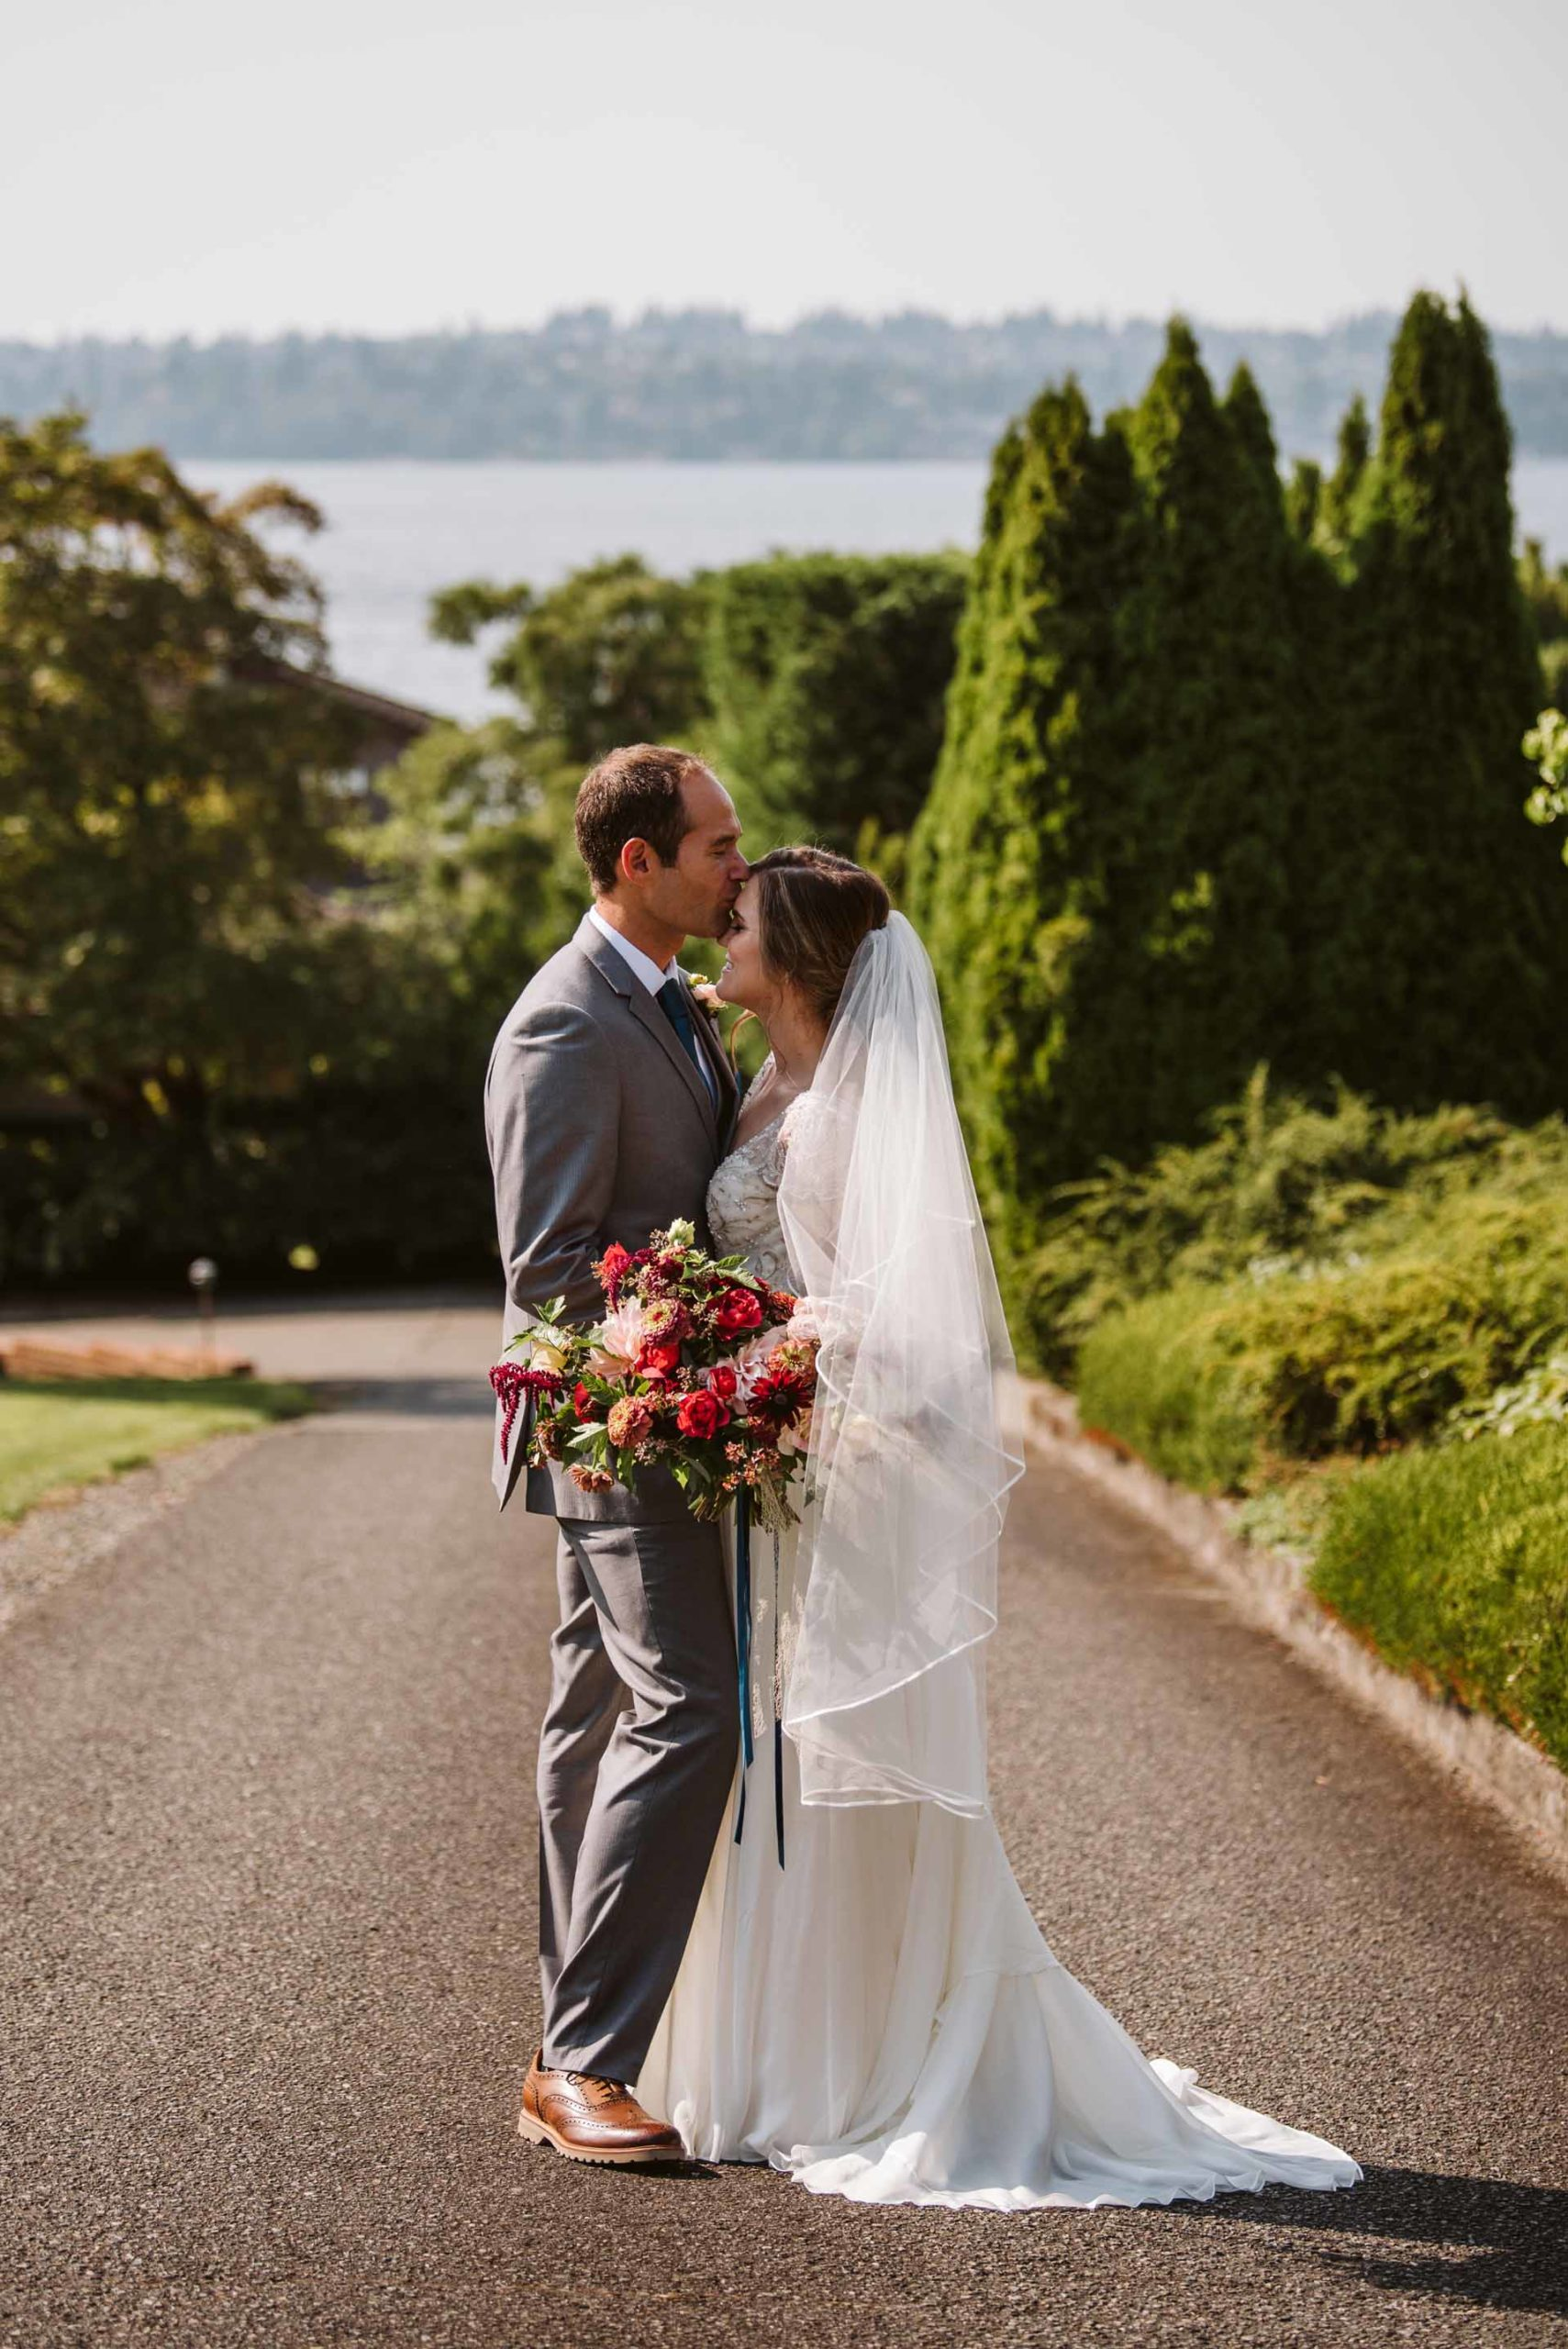 Bride and groom at their Intimate summer garden wedding